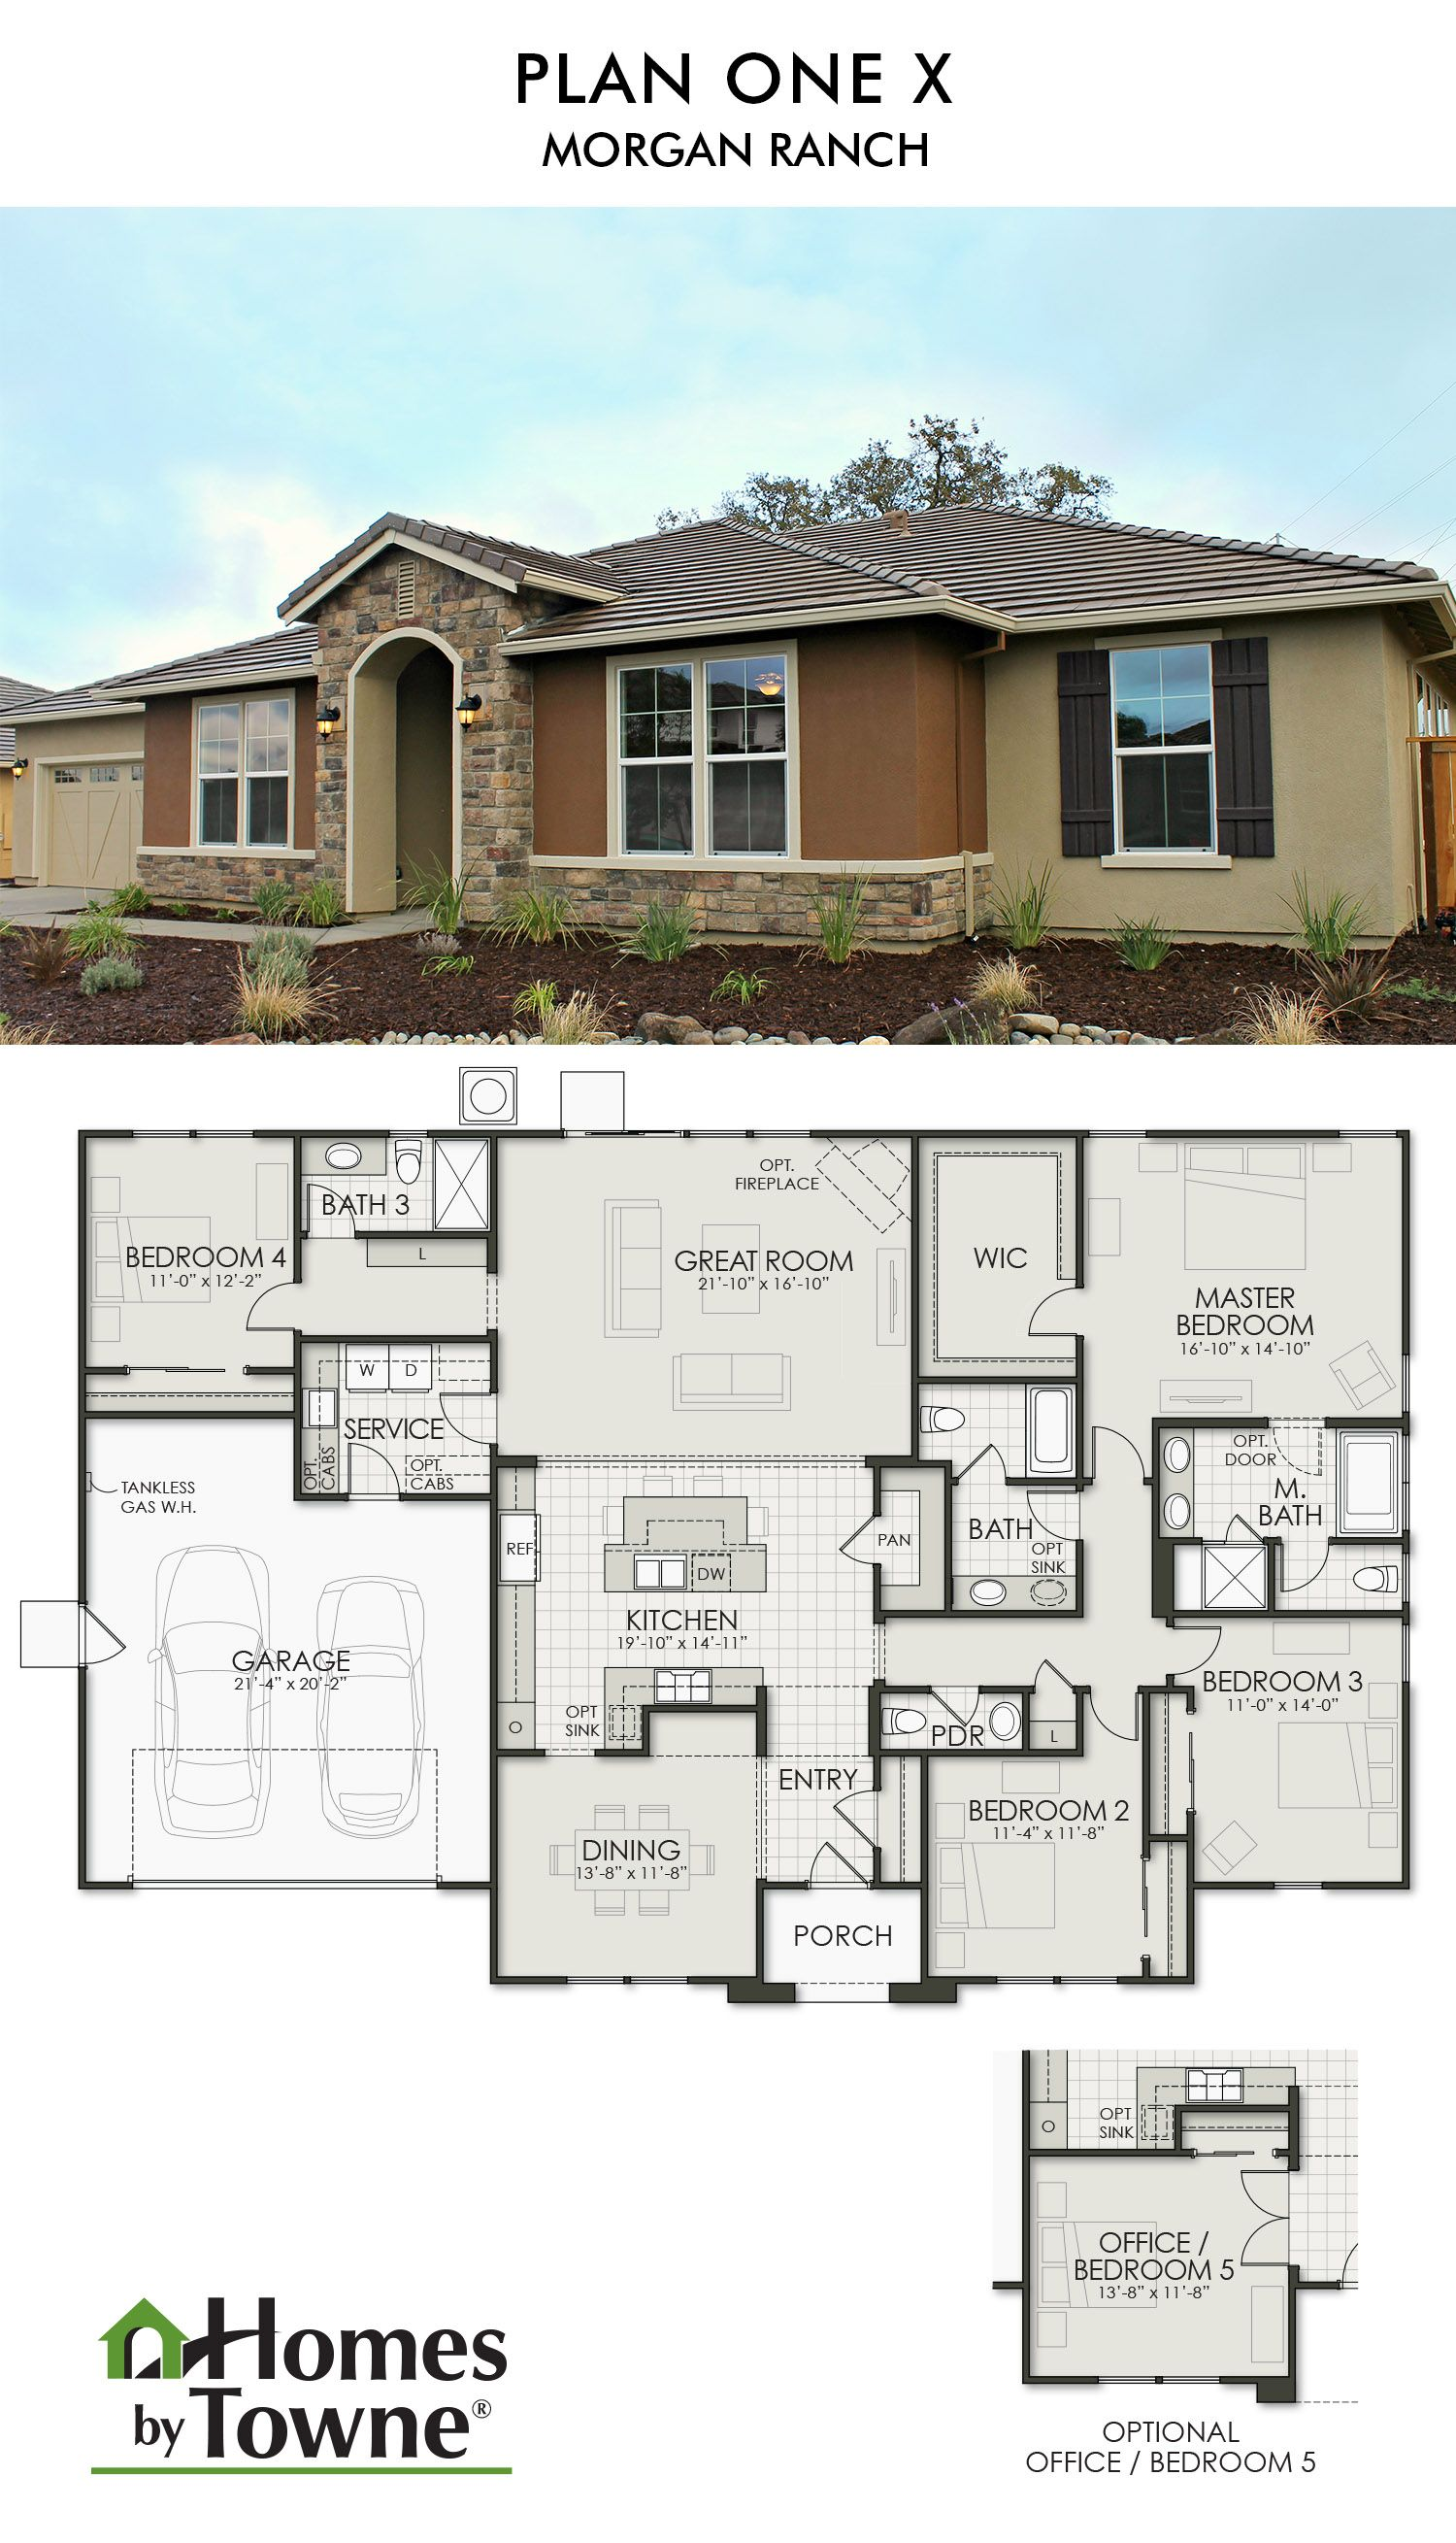 Plan One X Morgan Ranch Roseville, CA Homes by Towne | California ...